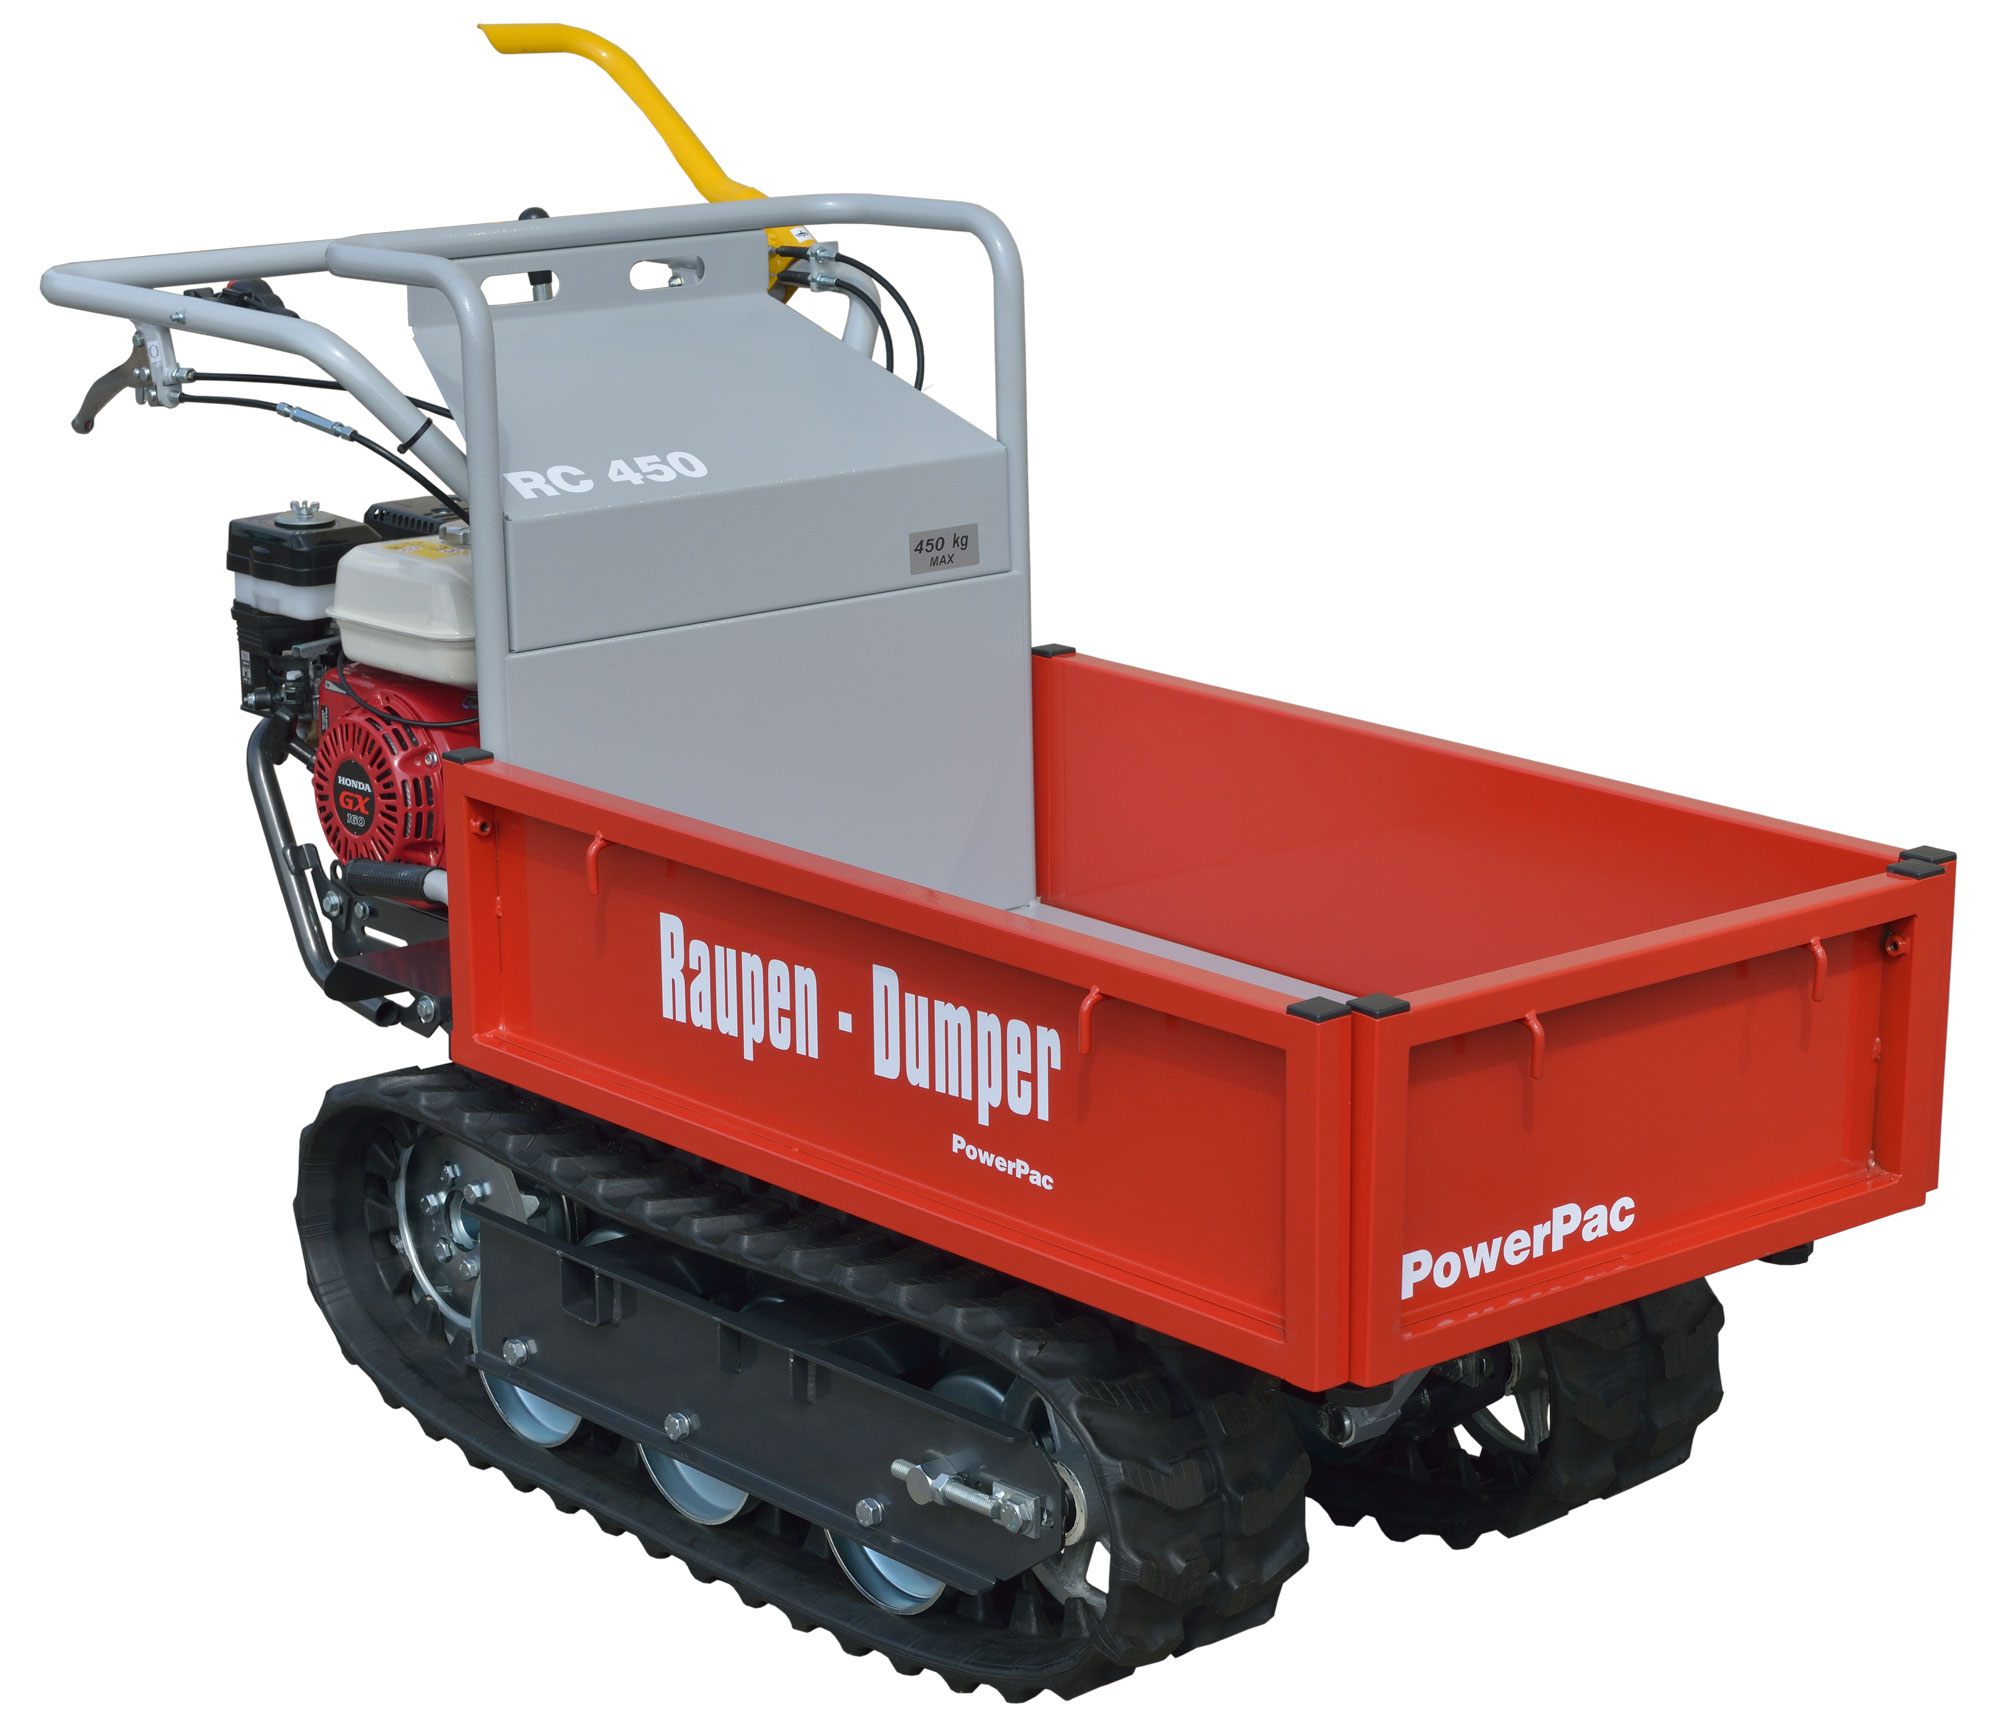 Powerpac Raupendumper / Raupen-Caddy RC450 Bild 1